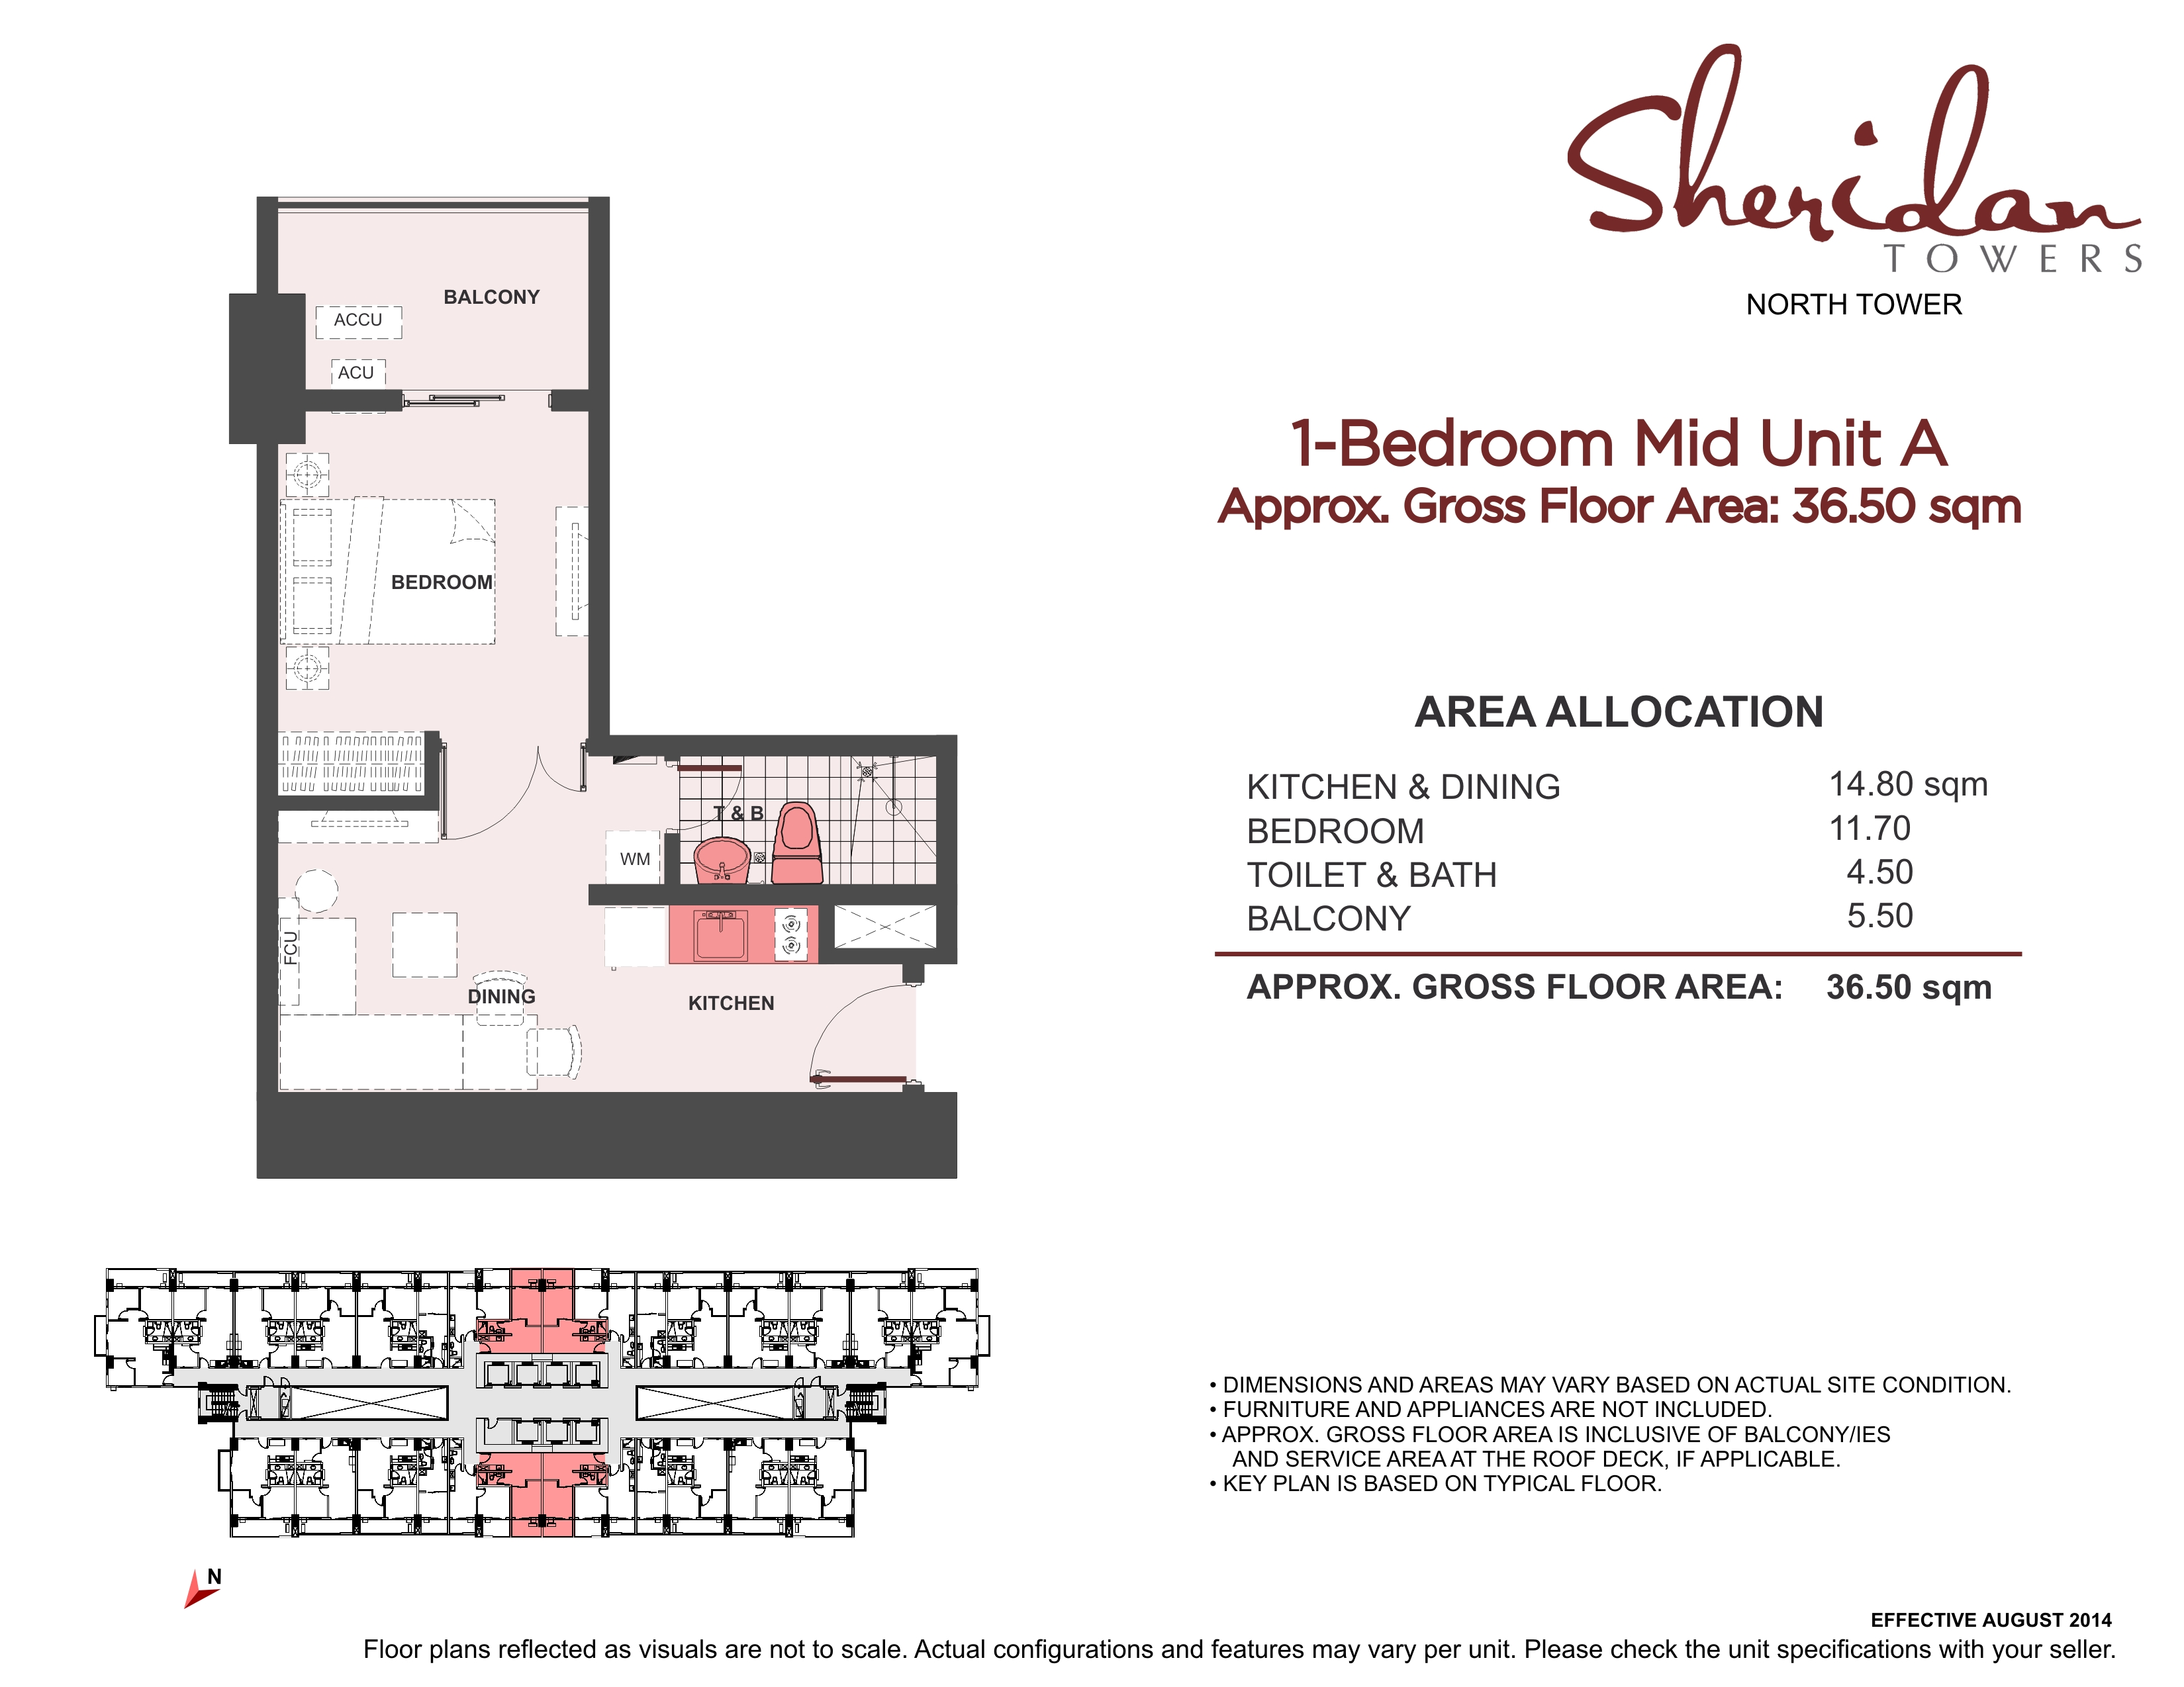 sheridan-towers-north-tower-1br-mid-unit-a